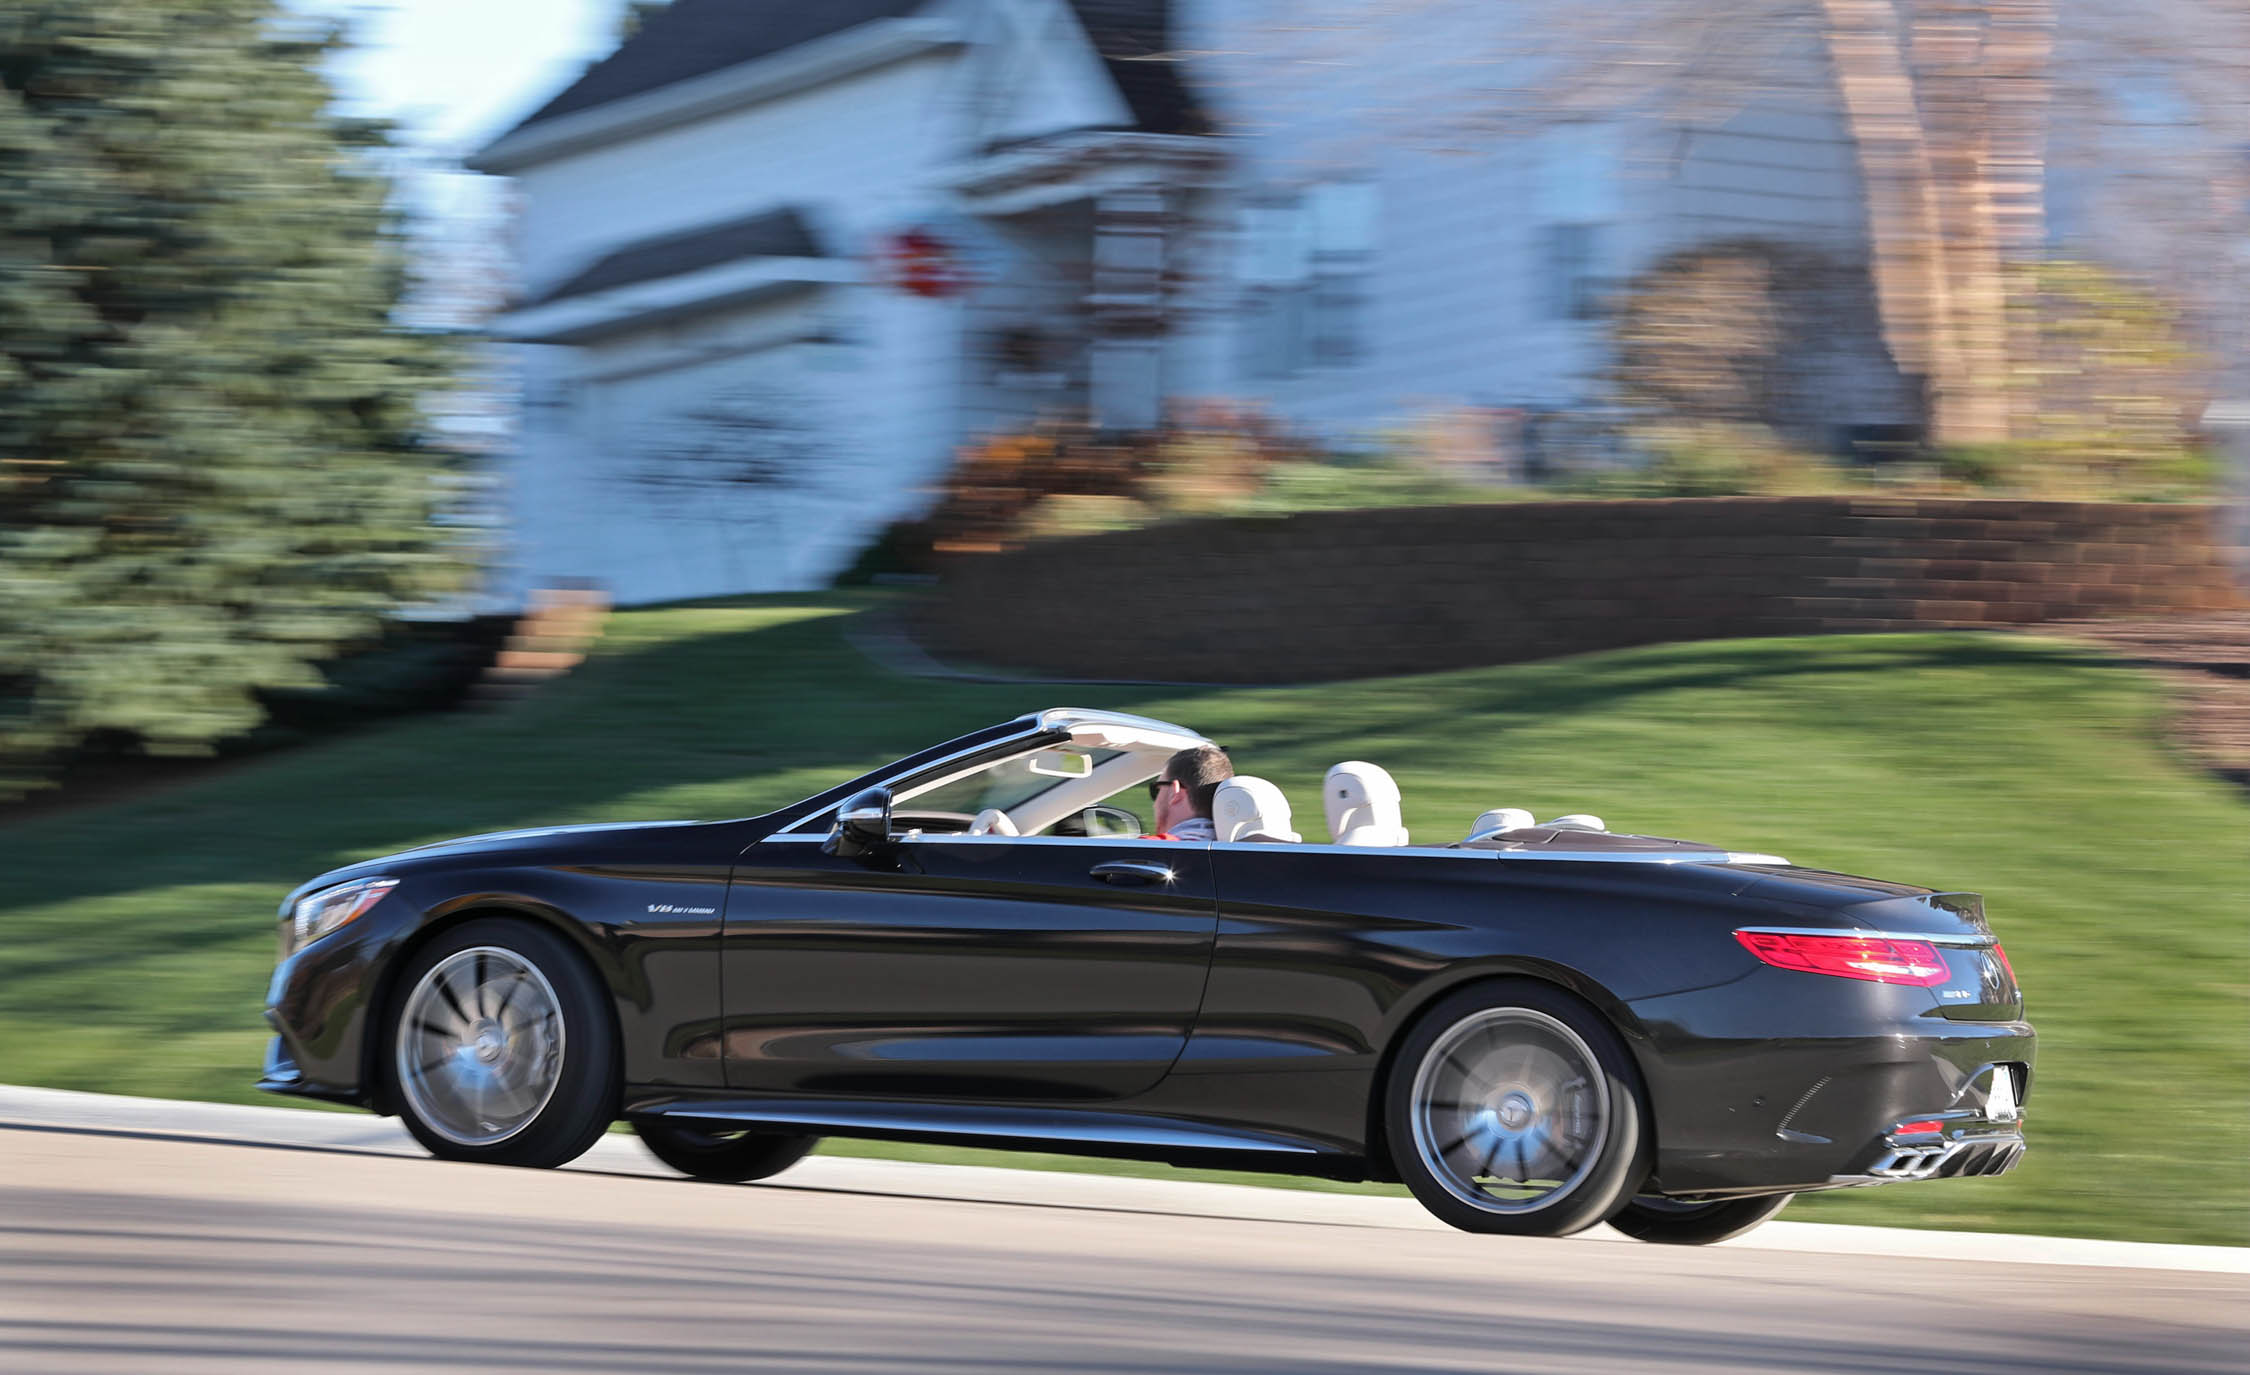 2017 Mercedes Amg S63 Cabriolet Test Drive Rear And Side View (Photo 31 of 38)